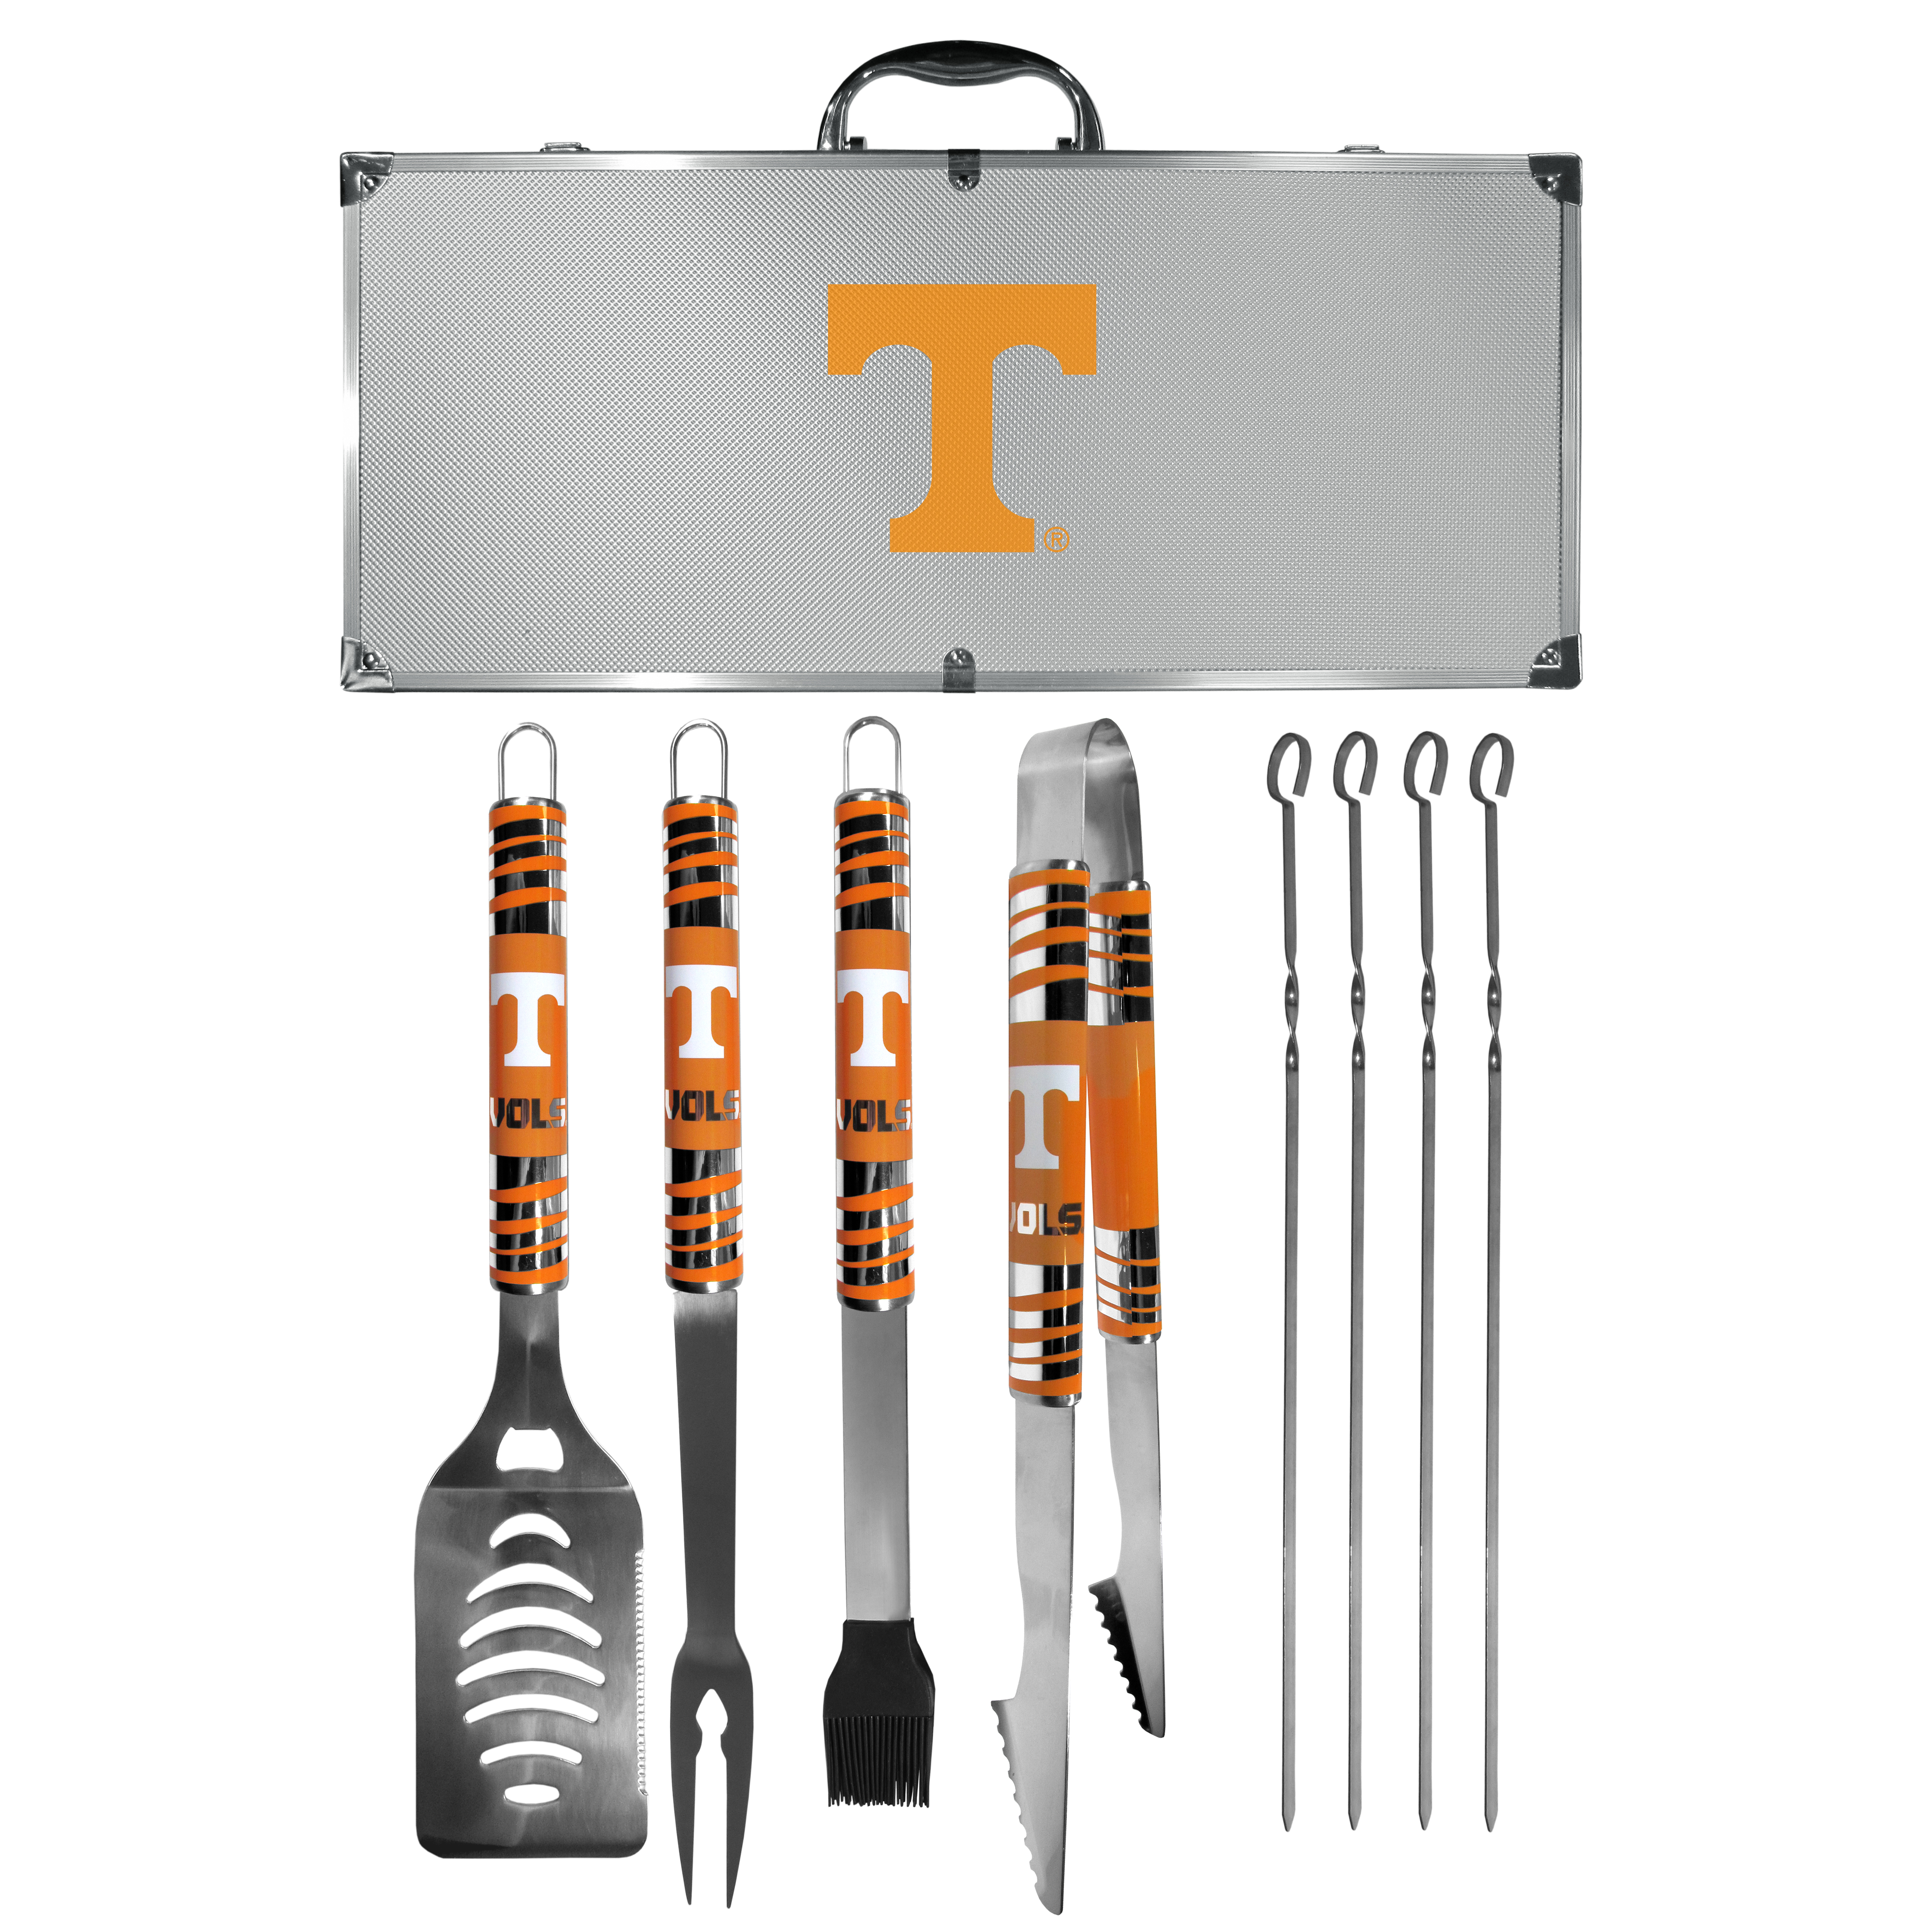 Tennessee Volunteers 8 pc Tailgater BBQ Set - This is the ultimate Tennessee Volunteers tailgate accessory! The high quality, 420 grade stainless steel tools are durable and well-made enough to make even the pickiest grill master smile. This complete grill accessory kit includes; 4 skewers, spatula with bottle opener and serrated knife edge, basting brush, tongs and a fork. The 18 inch metal carrying case is perfect for great outdoor use making grilling an ease while camping, tailgating or while having a game day party on your patio. The tools are 17 inches long and feature vivid team graphics. The metal case features a large team emblem with exceptional detail. This high-end men's gift is sure to be a hit as a present on Father's Day or Christmas.